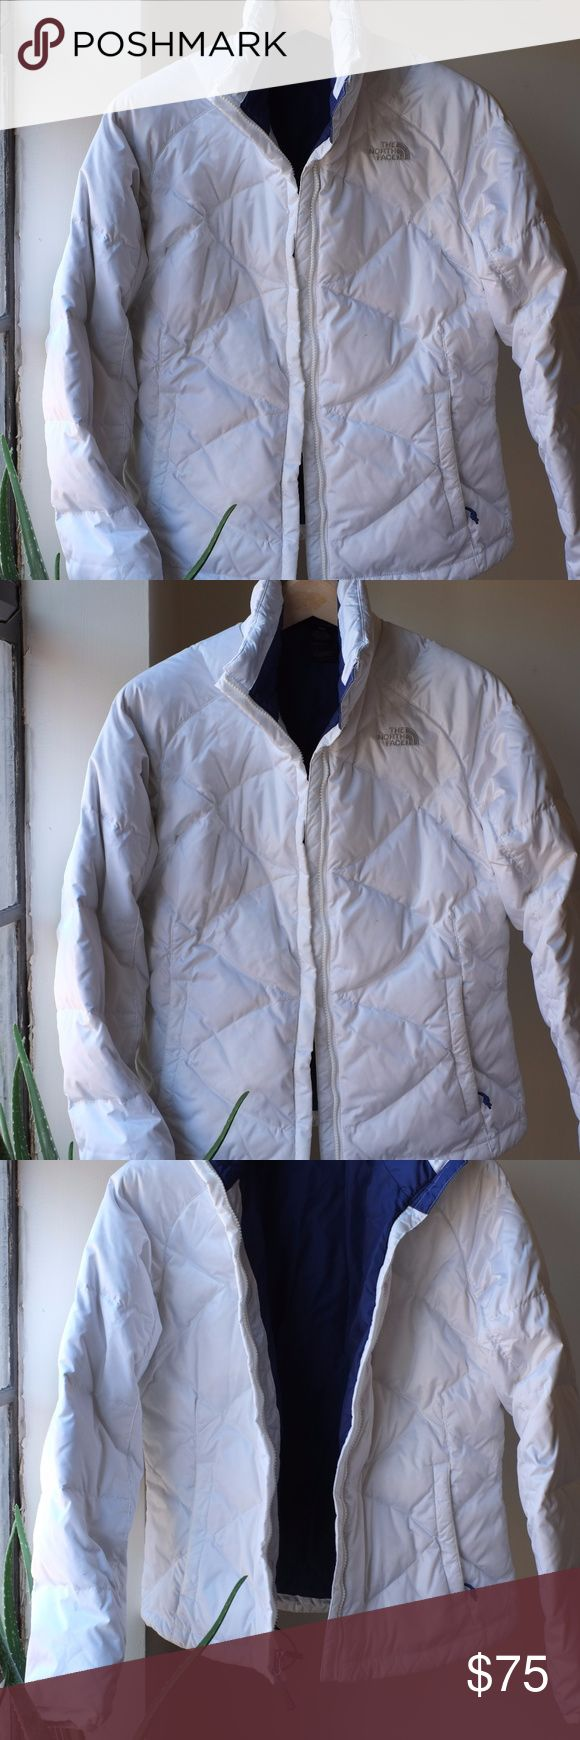 Northface Pearl White Nuptse Jacket This is a 2 year old coat that was a Christmas gift and has been worn maybe a handful of times out of guilt (my mother bought it for me). I am not a Northface fanatic and already have several coats that fit this purpose as a snowboarder. Smoke-free home, extremely clean. The North Face Jackets & Coats Puffers